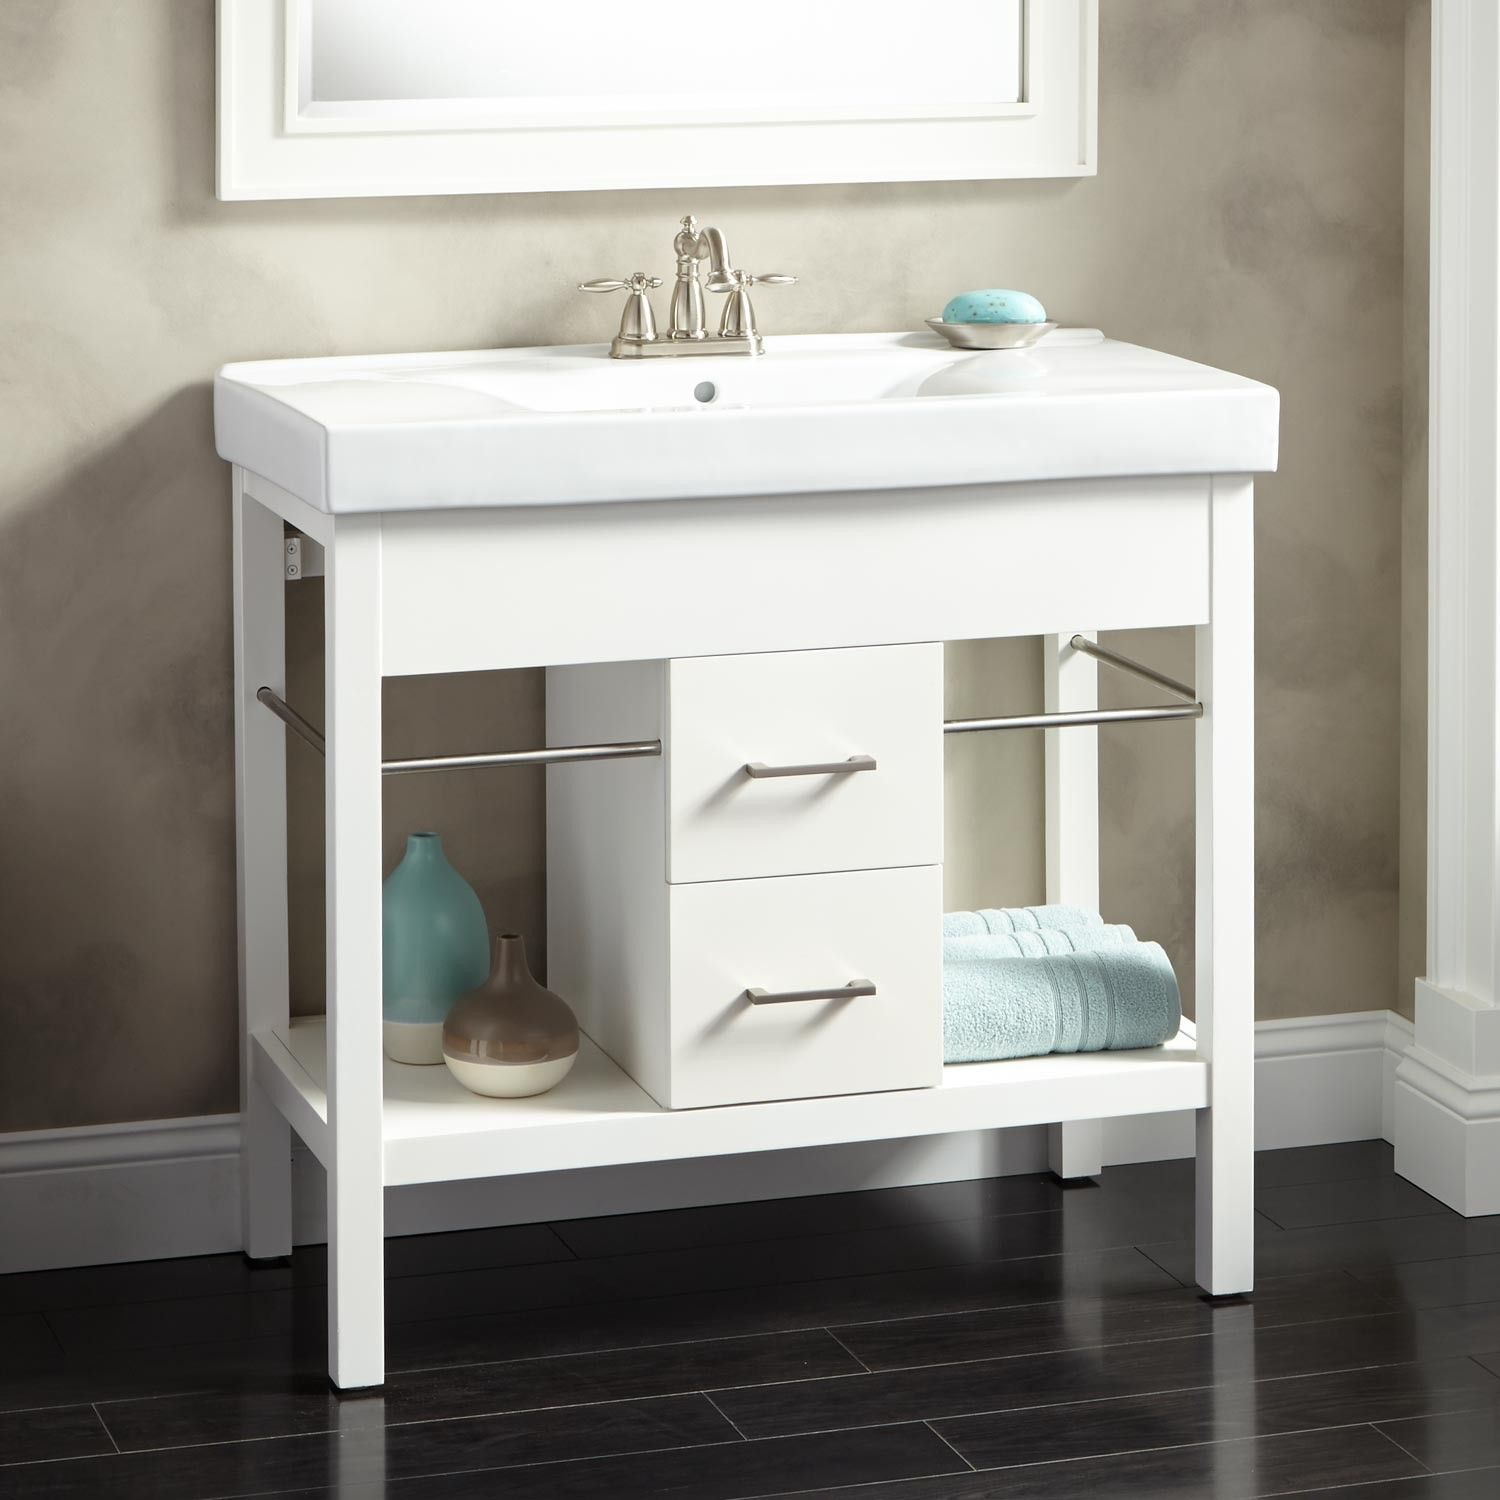 bathroom console vanity. 36\ bathroom console vanity i